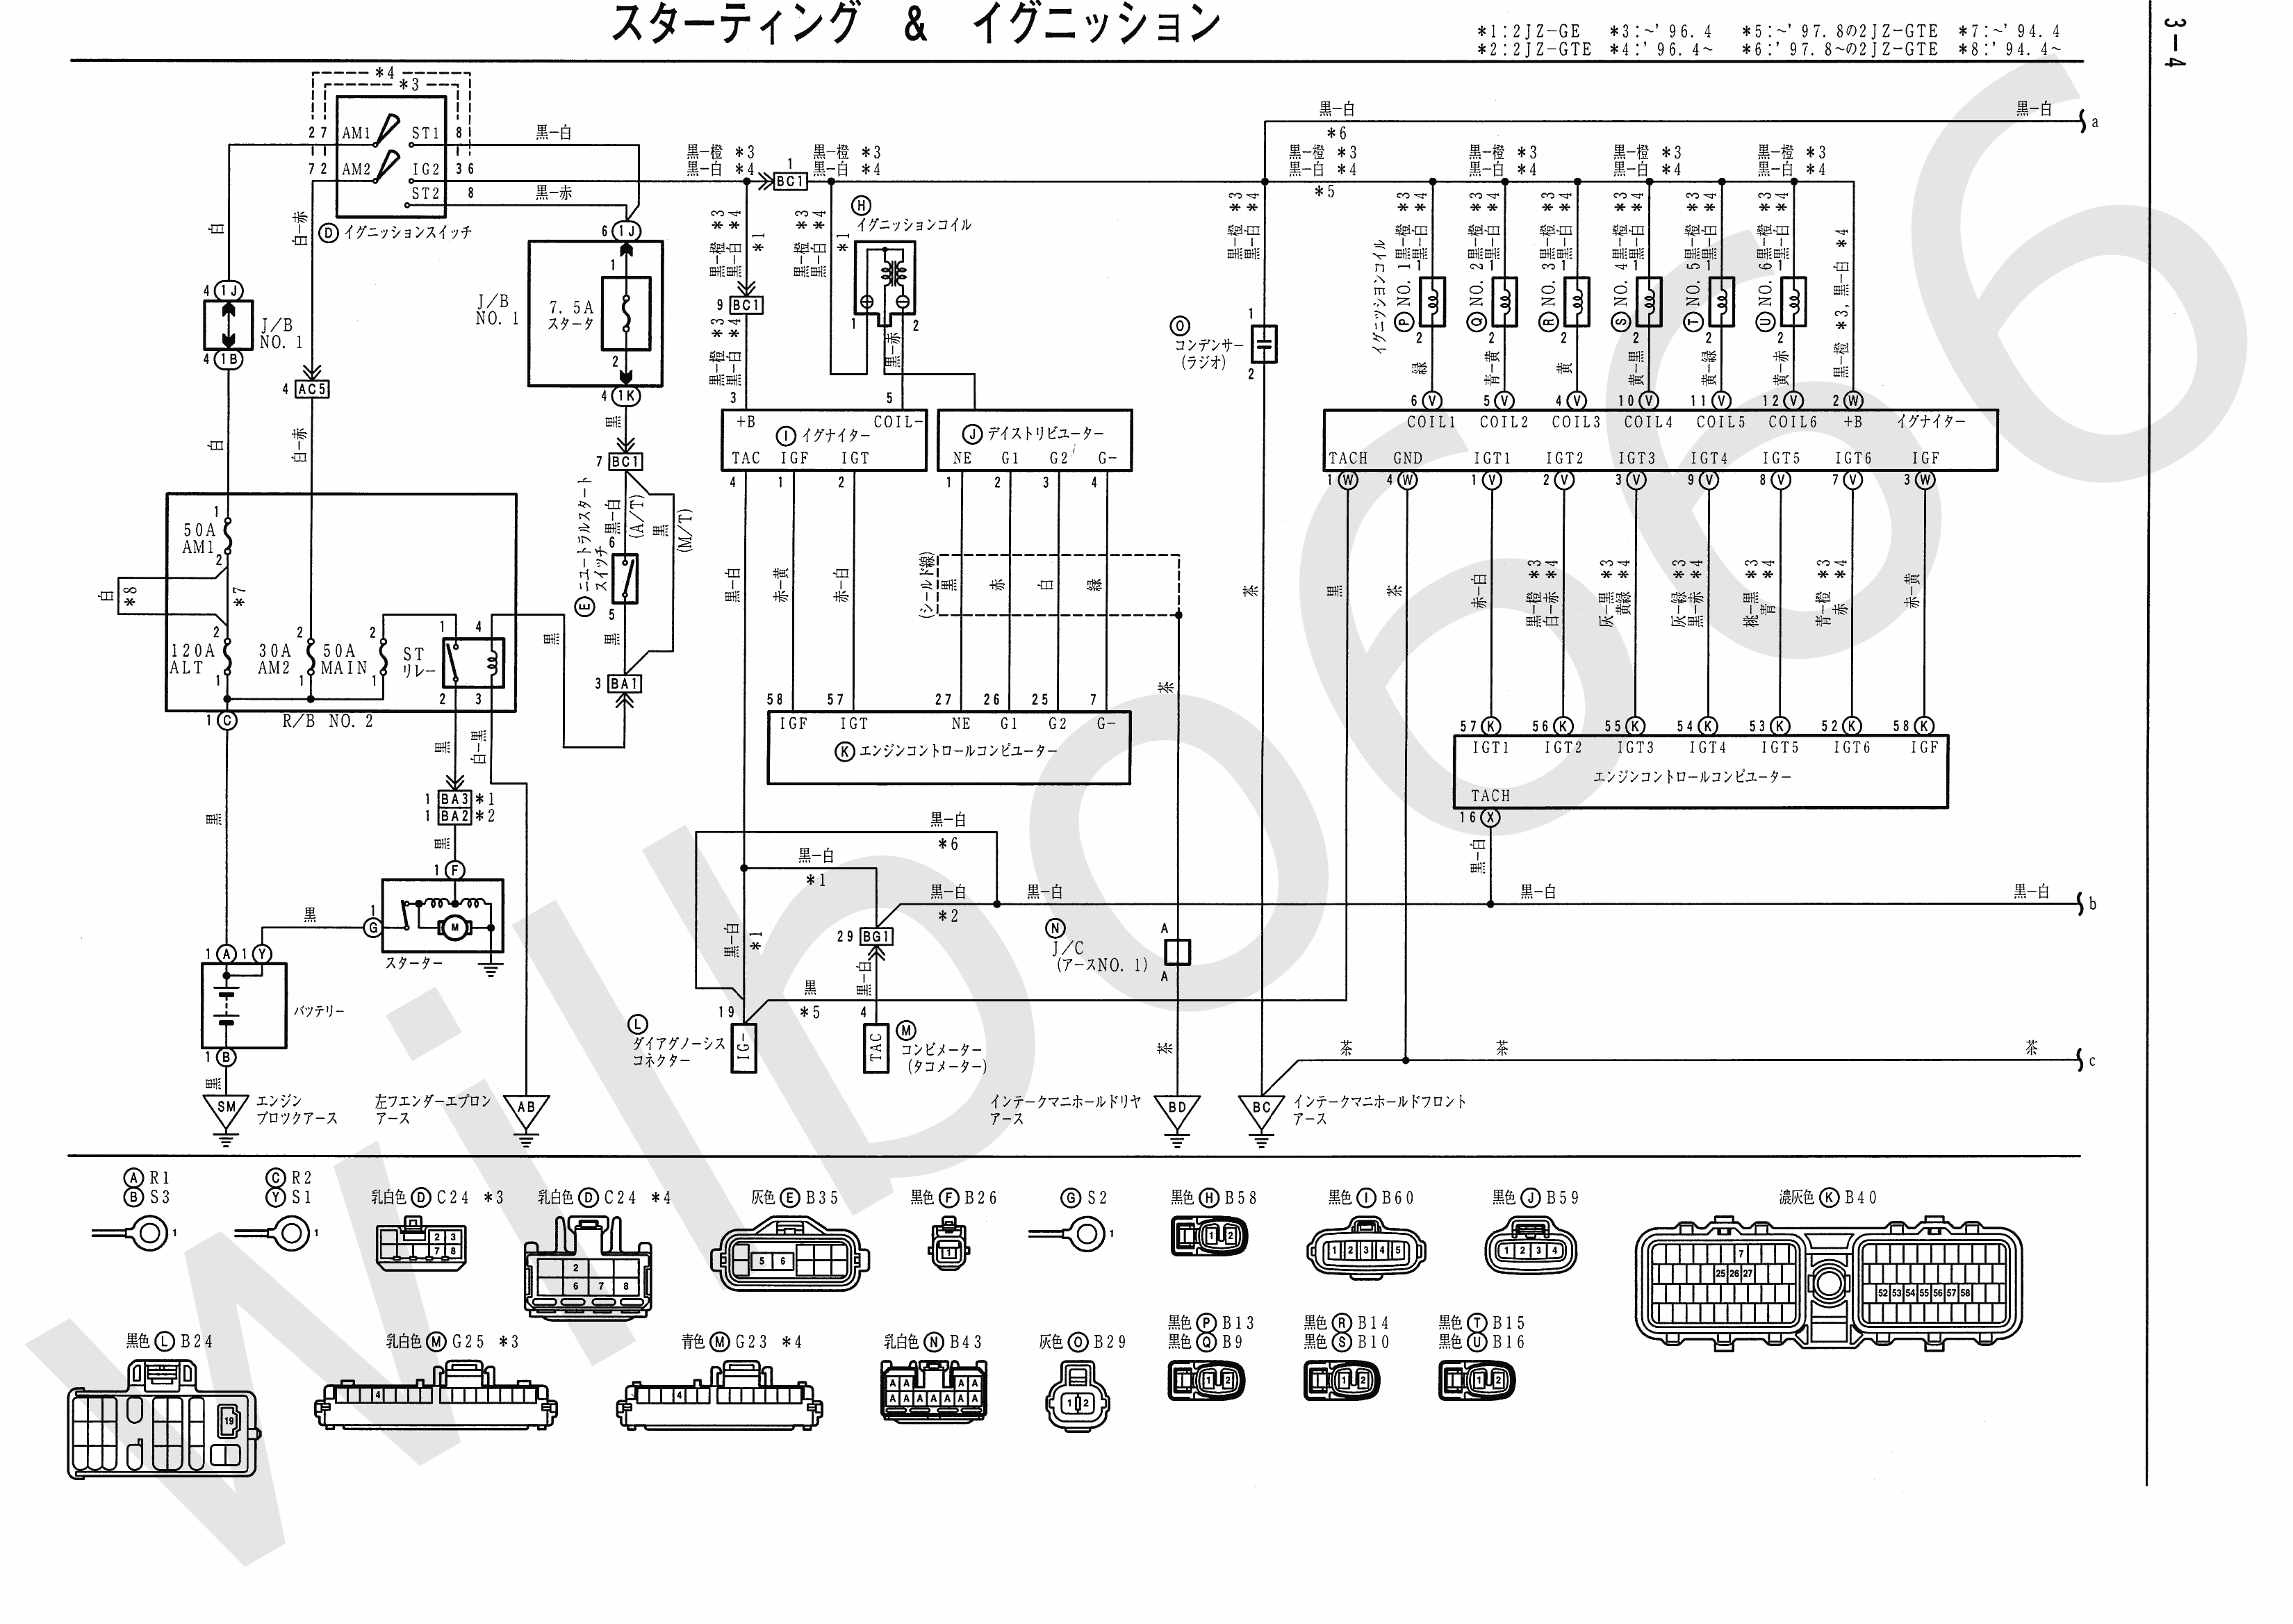 JZA80 Electrical Wiring Diagram 6742505 3 4 wilbo666 2jz ge jza80 supra engine wiring ge wiring diagrams at bakdesigns.co